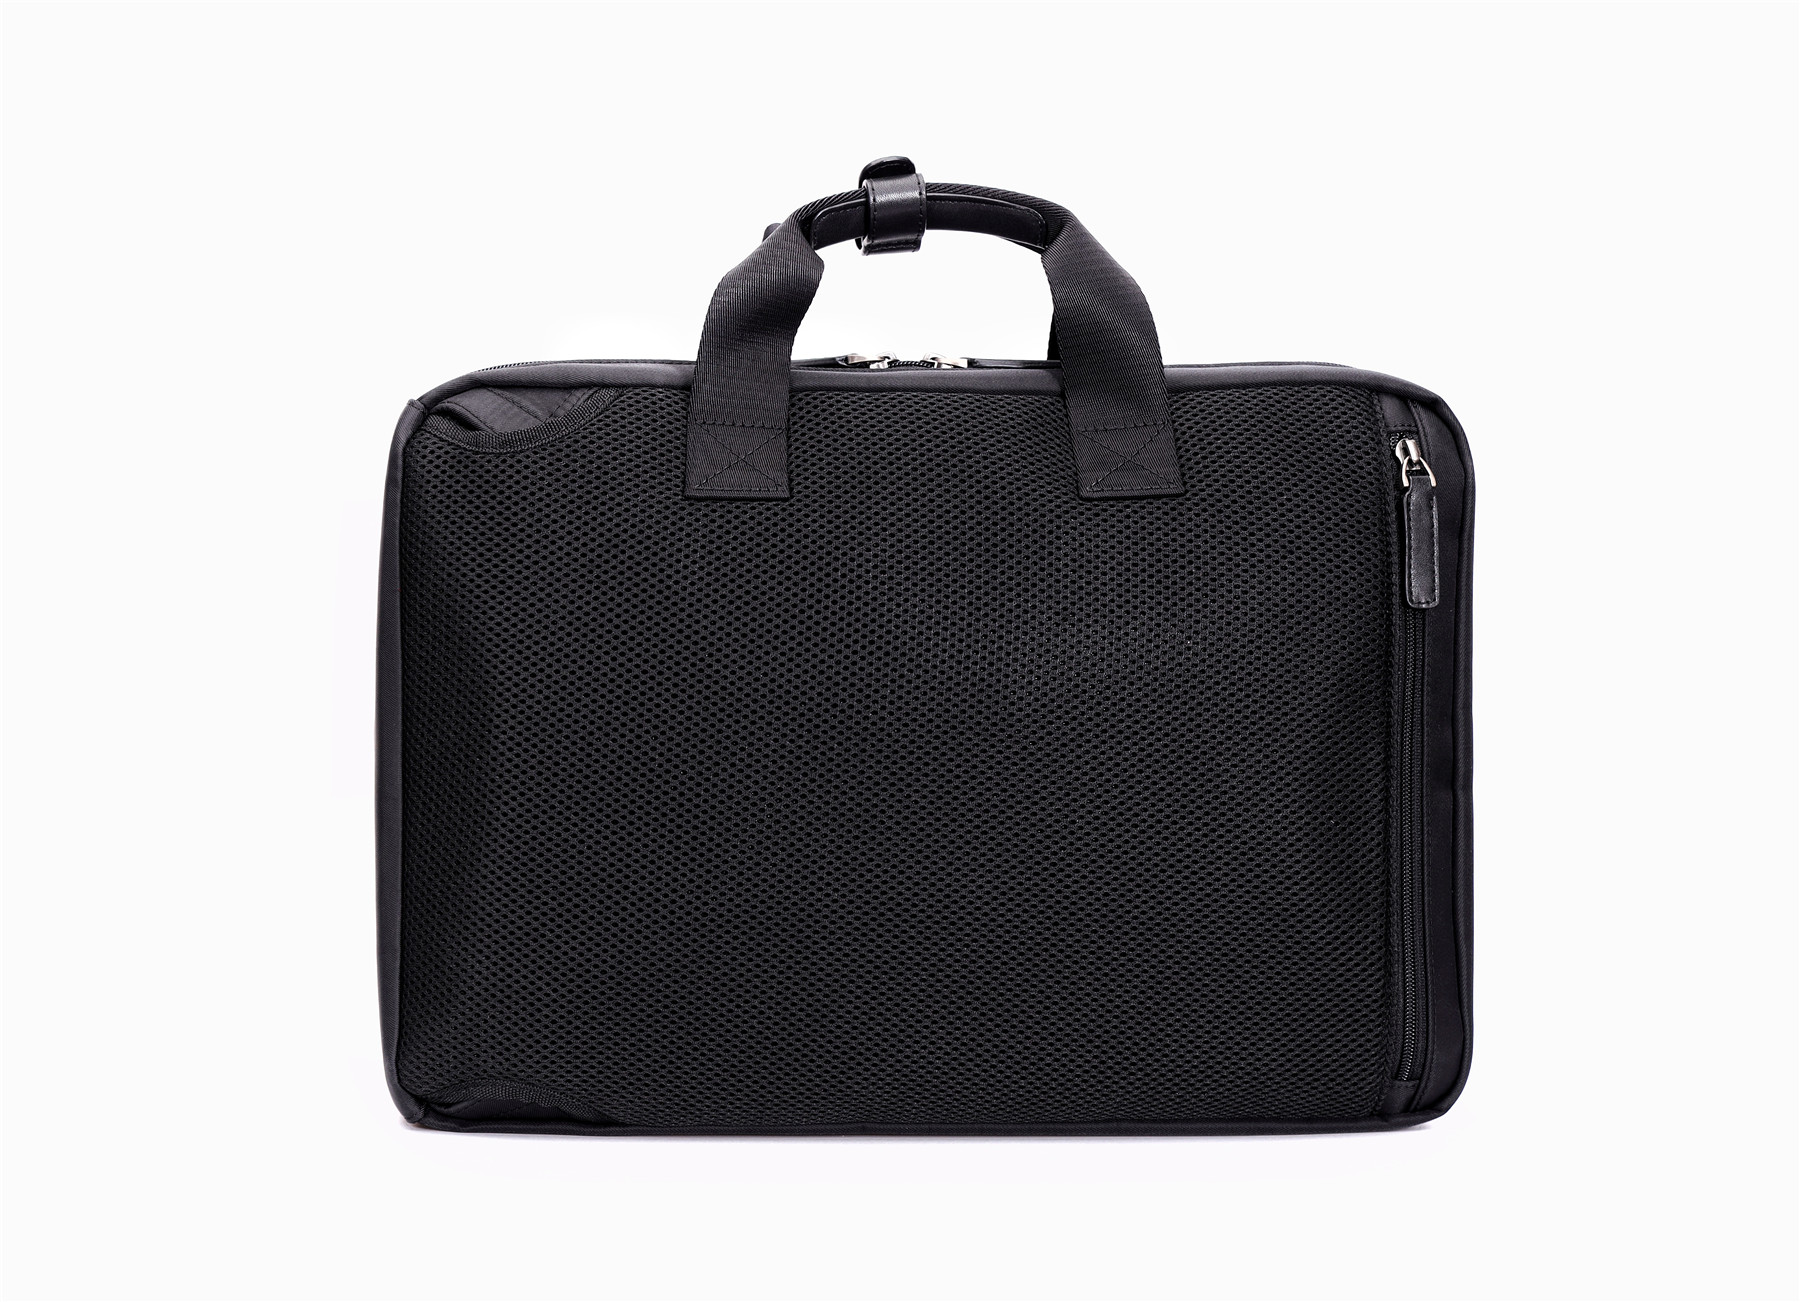 GF bags-Briefcase nylon fabric multifunction business bag